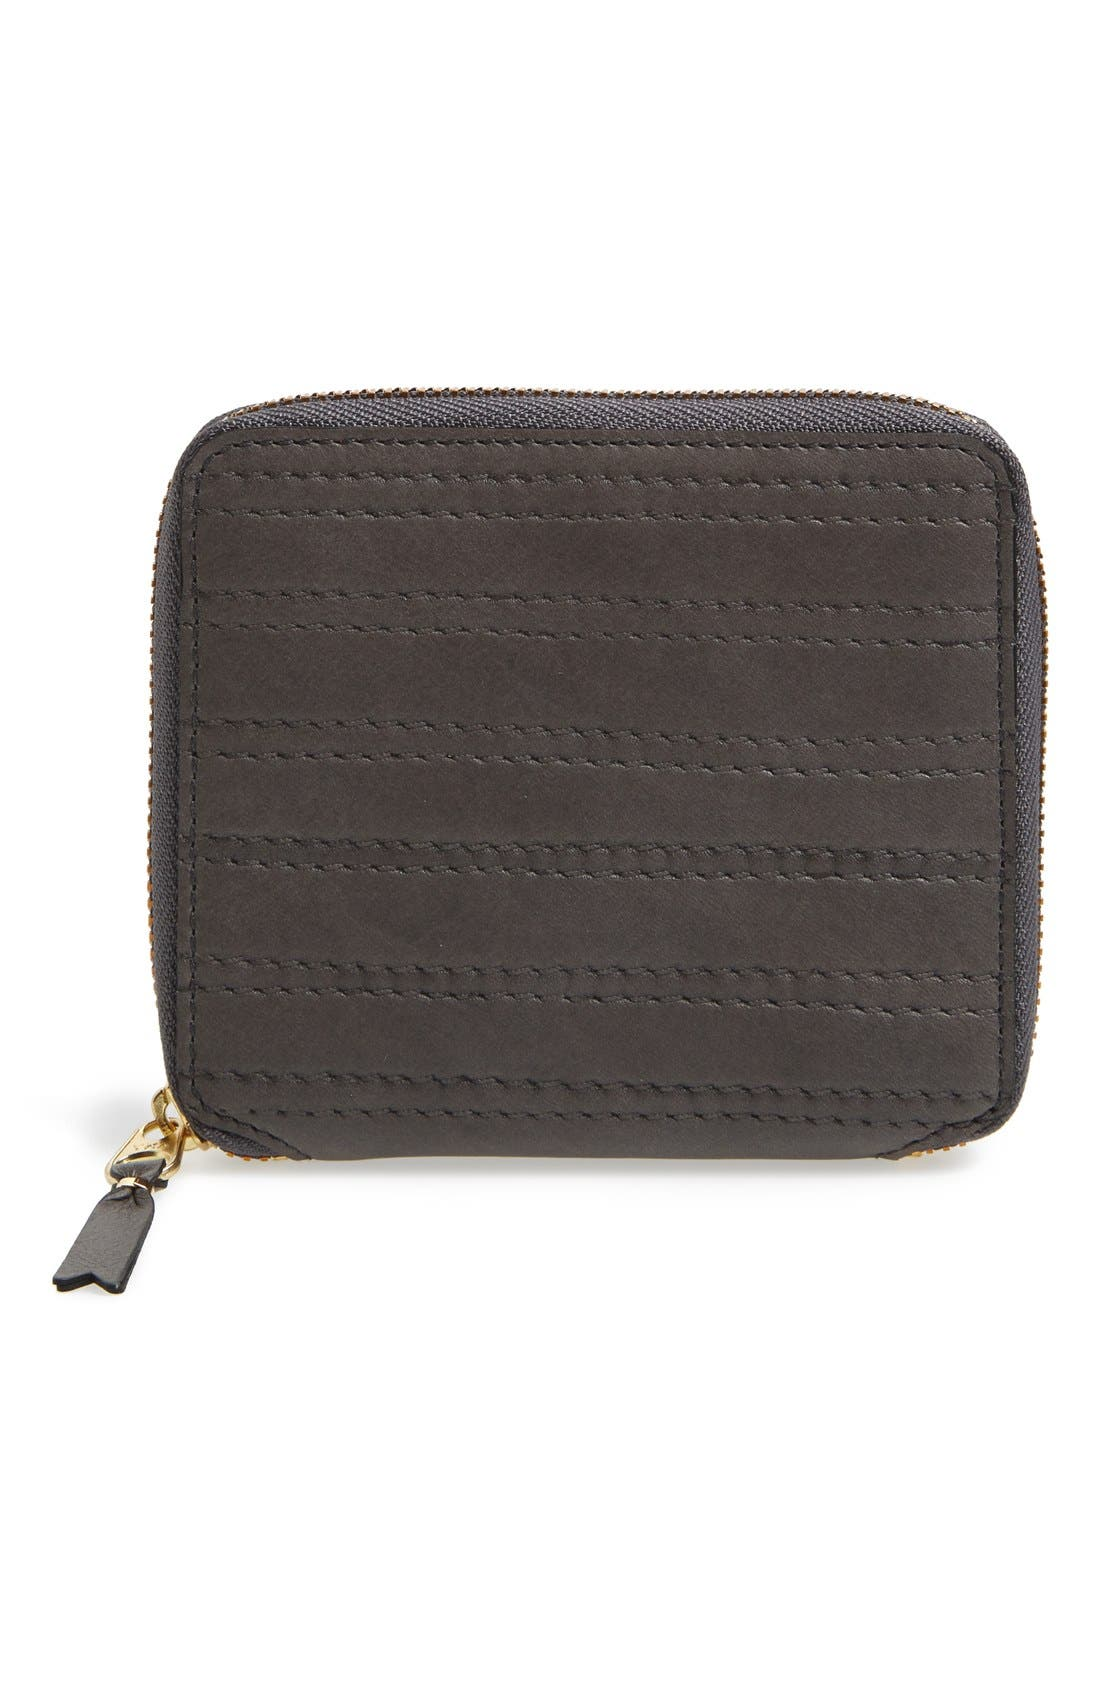 'Embossed Stitch' French Wallet,                             Main thumbnail 1, color,                             Grey